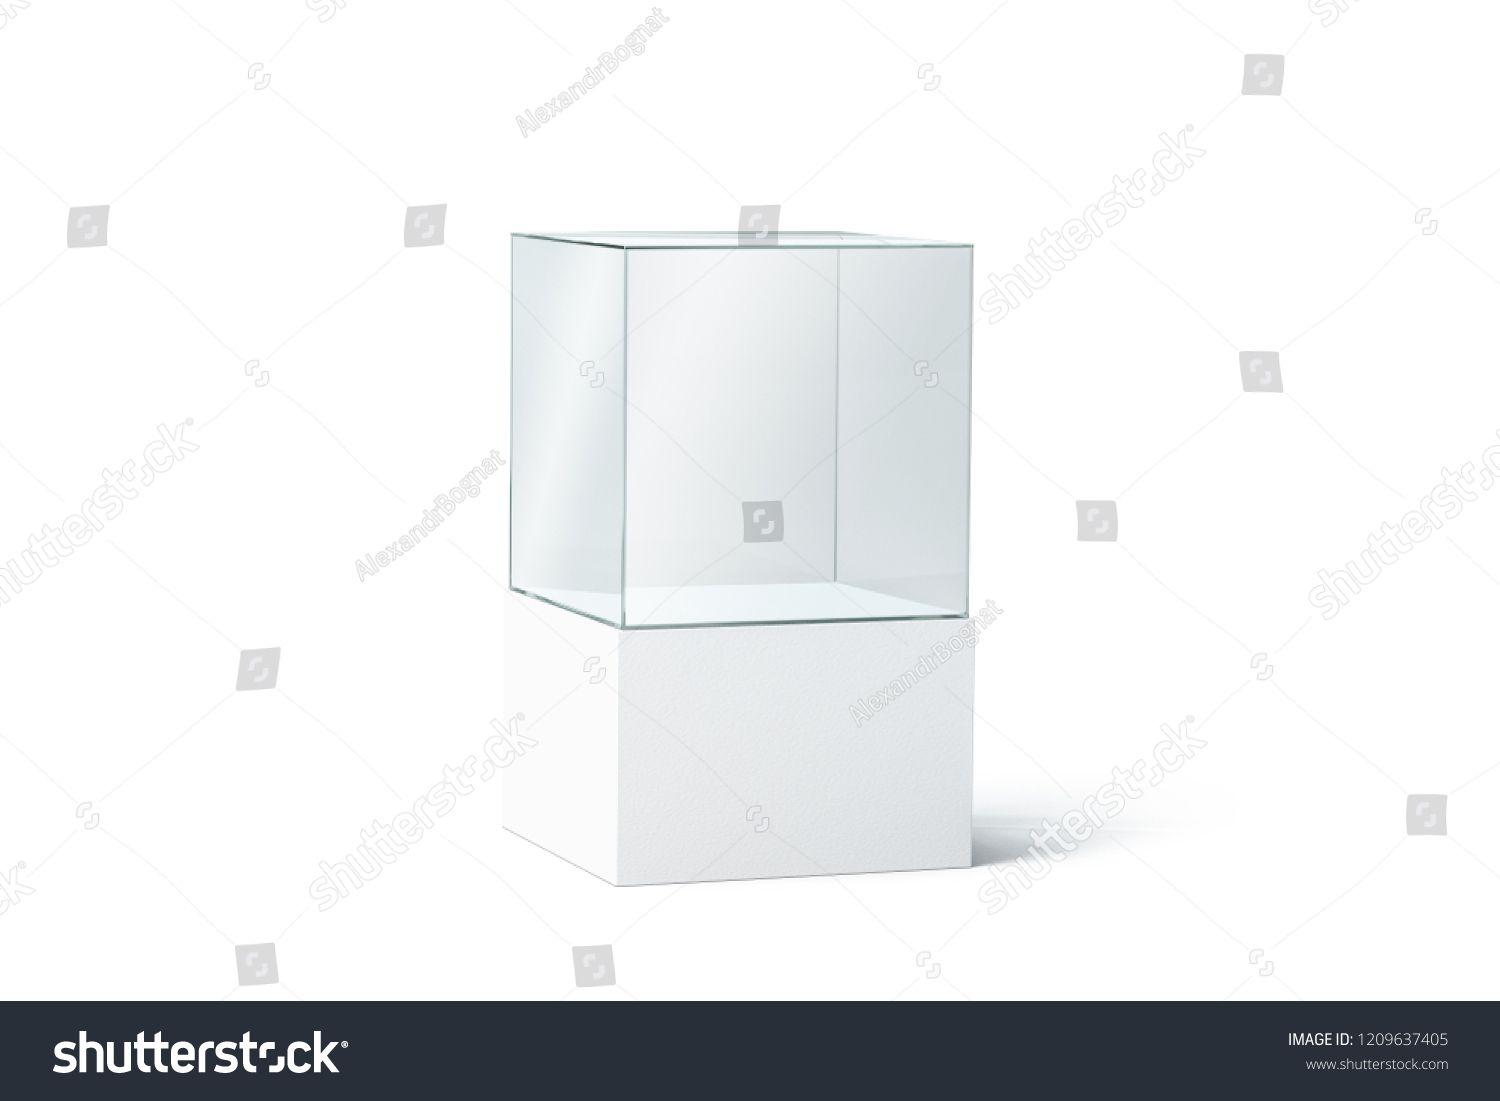 Download Blank White Glass Box Podium Mockup Isolated 3d Rendering Empty Transparent Showcase Mock Up Side View Clear Exhibition Cube Glass Boxes White Glass Glass